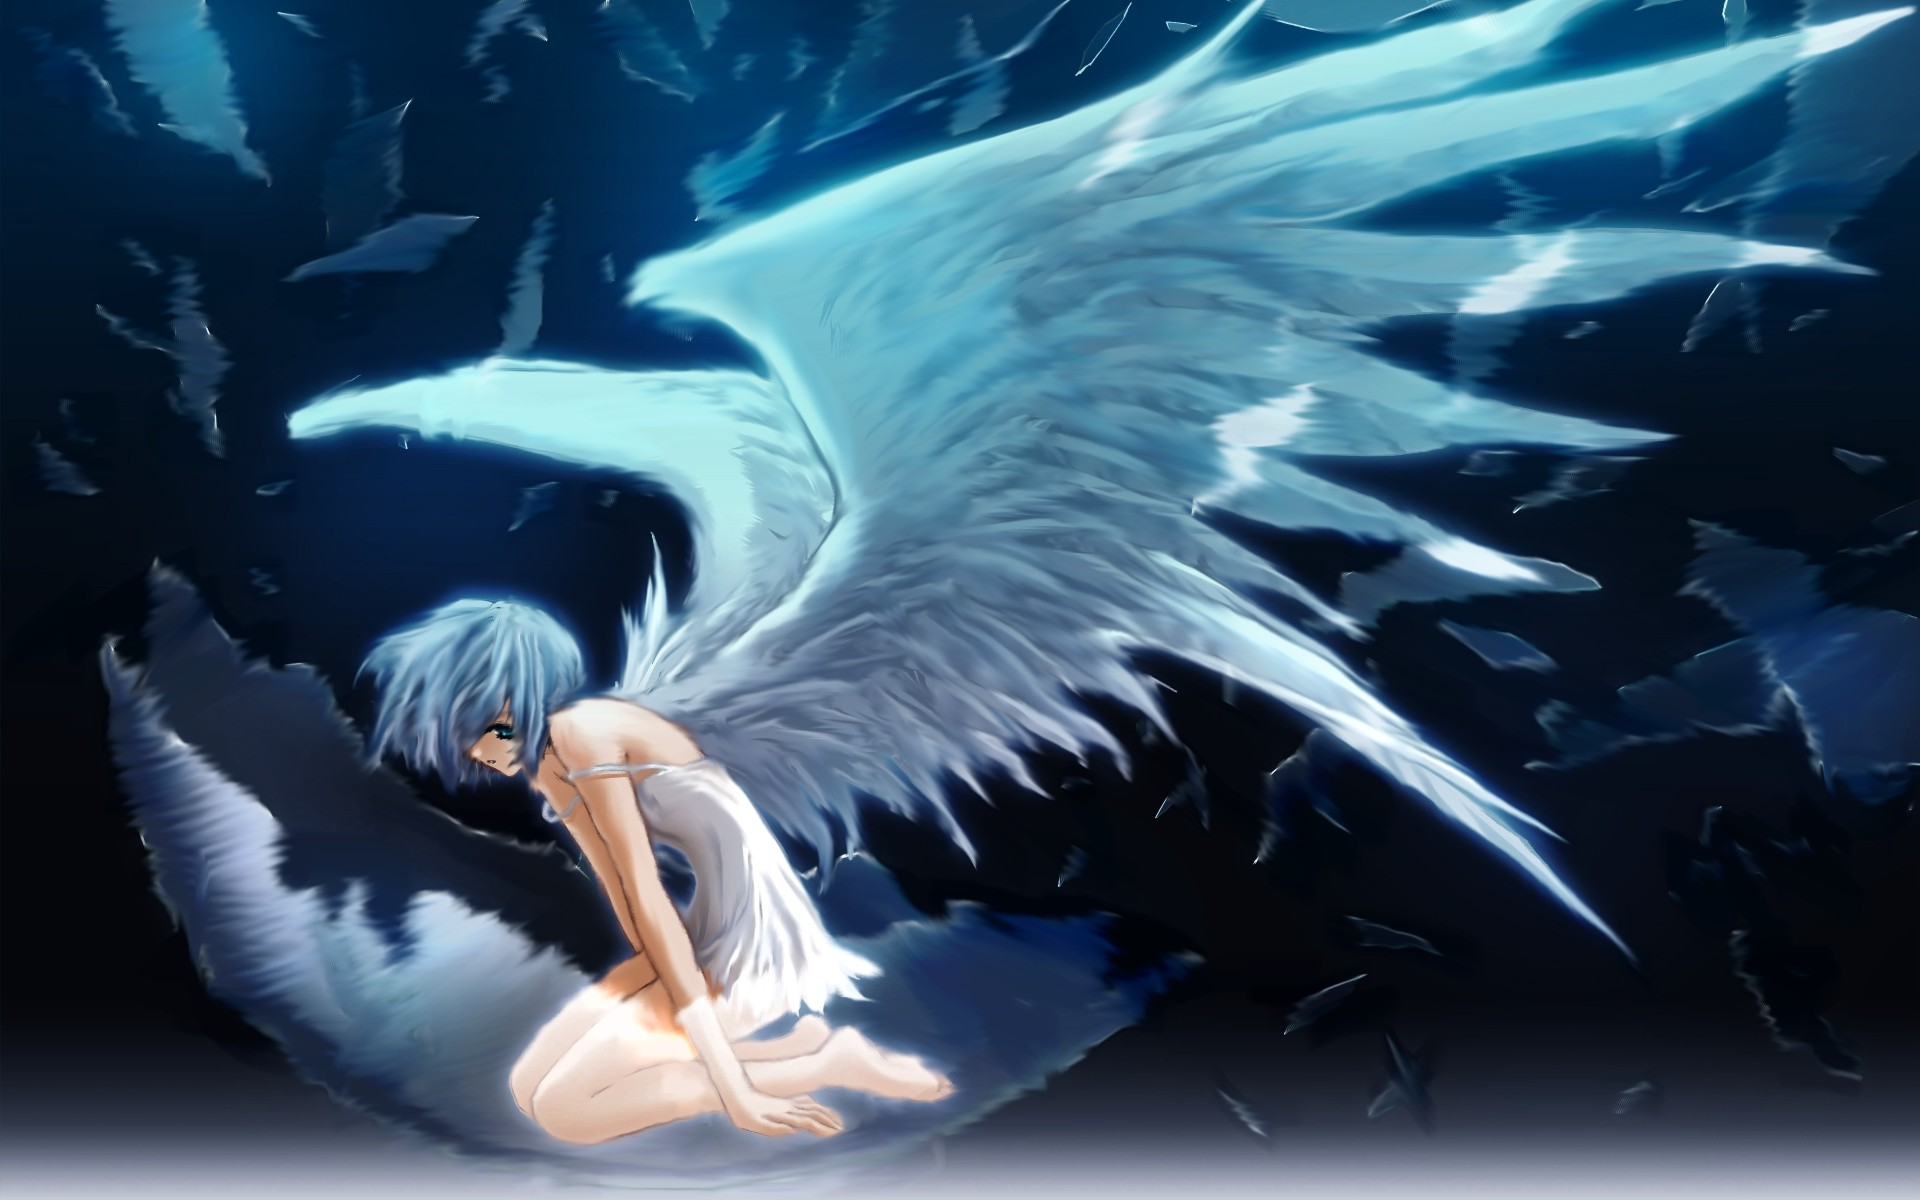 Animated Angel Wallpaper WallpaperSafari